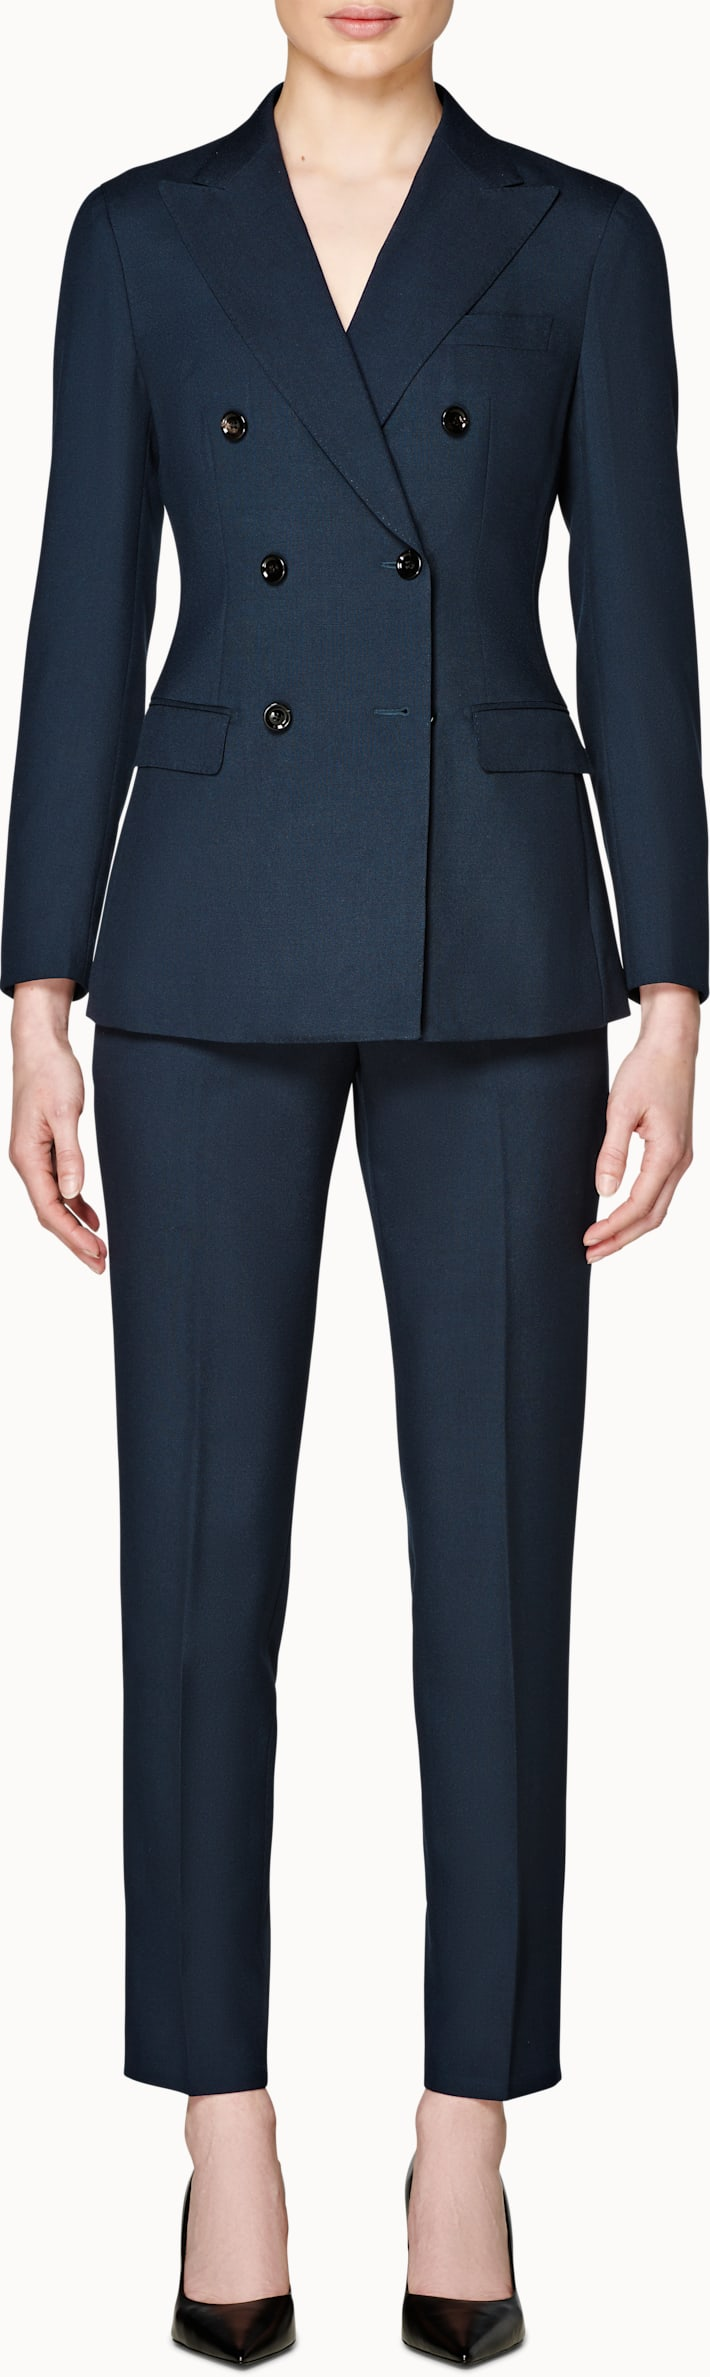 Cameron Navy Suit